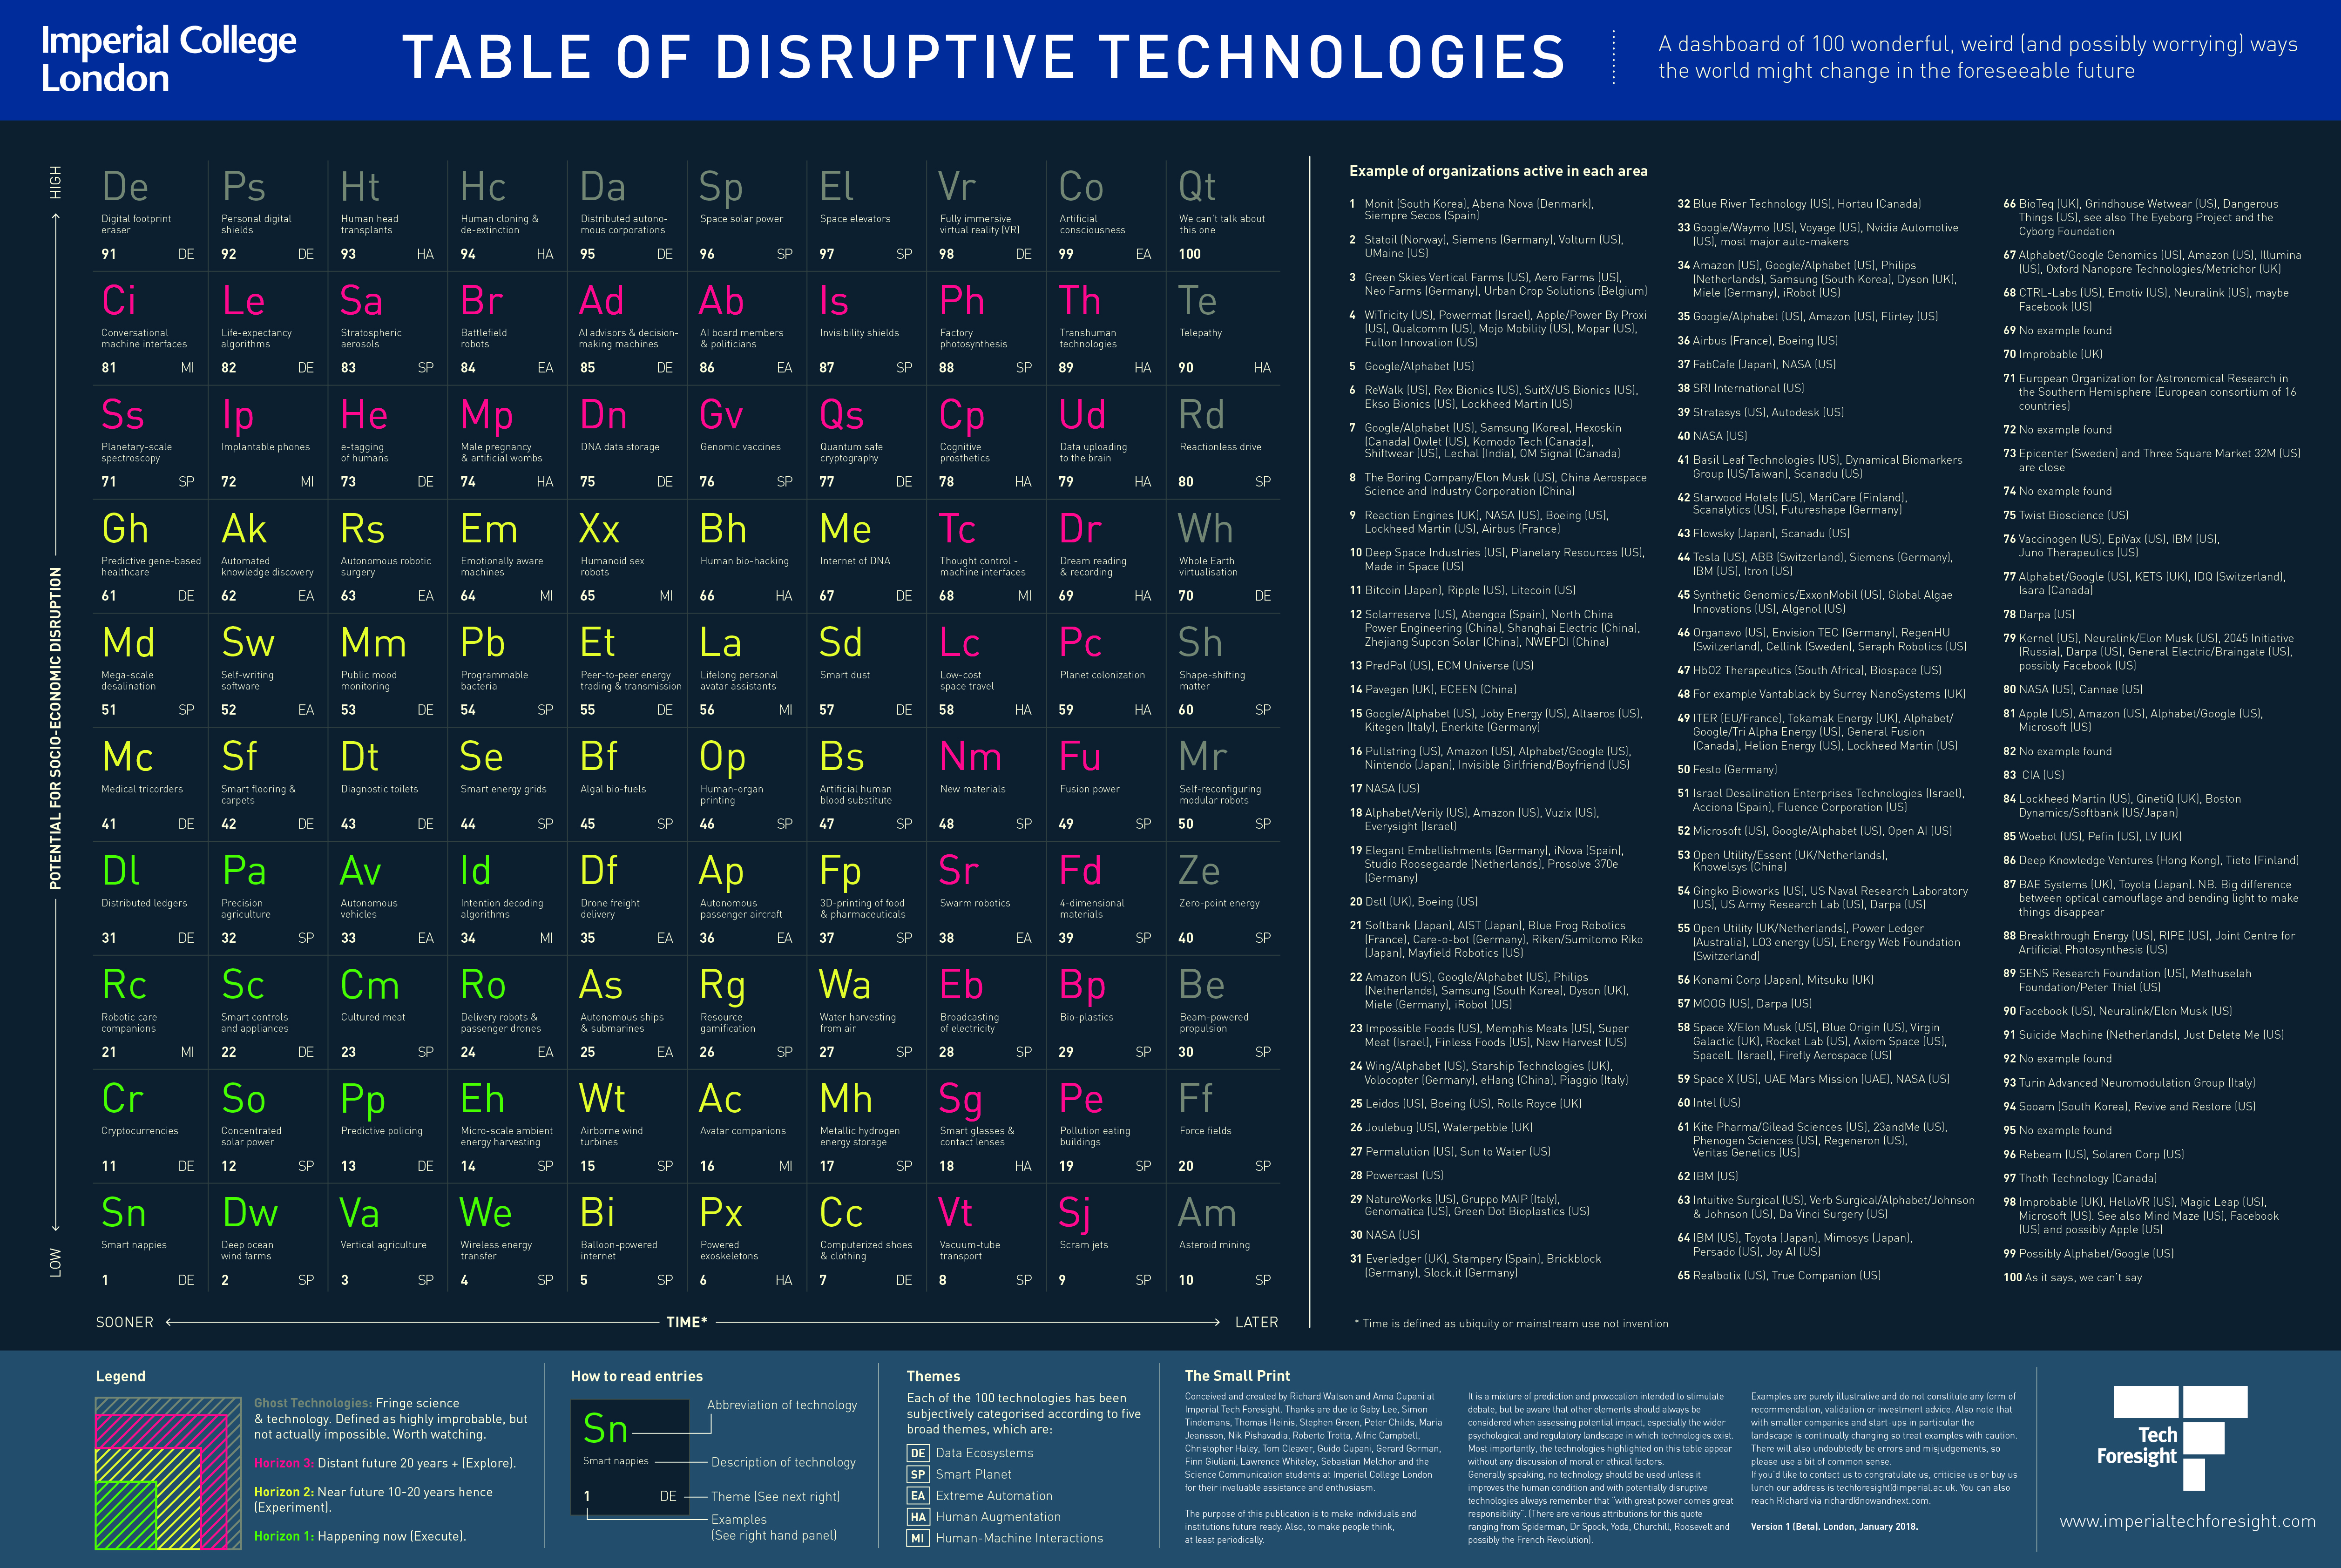 Periodic table of disruptive technologies and innovation ross dawson i highly recommended reading richards full explanation of the genesis and creation of the table a summary explanation is below urtaz Choice Image